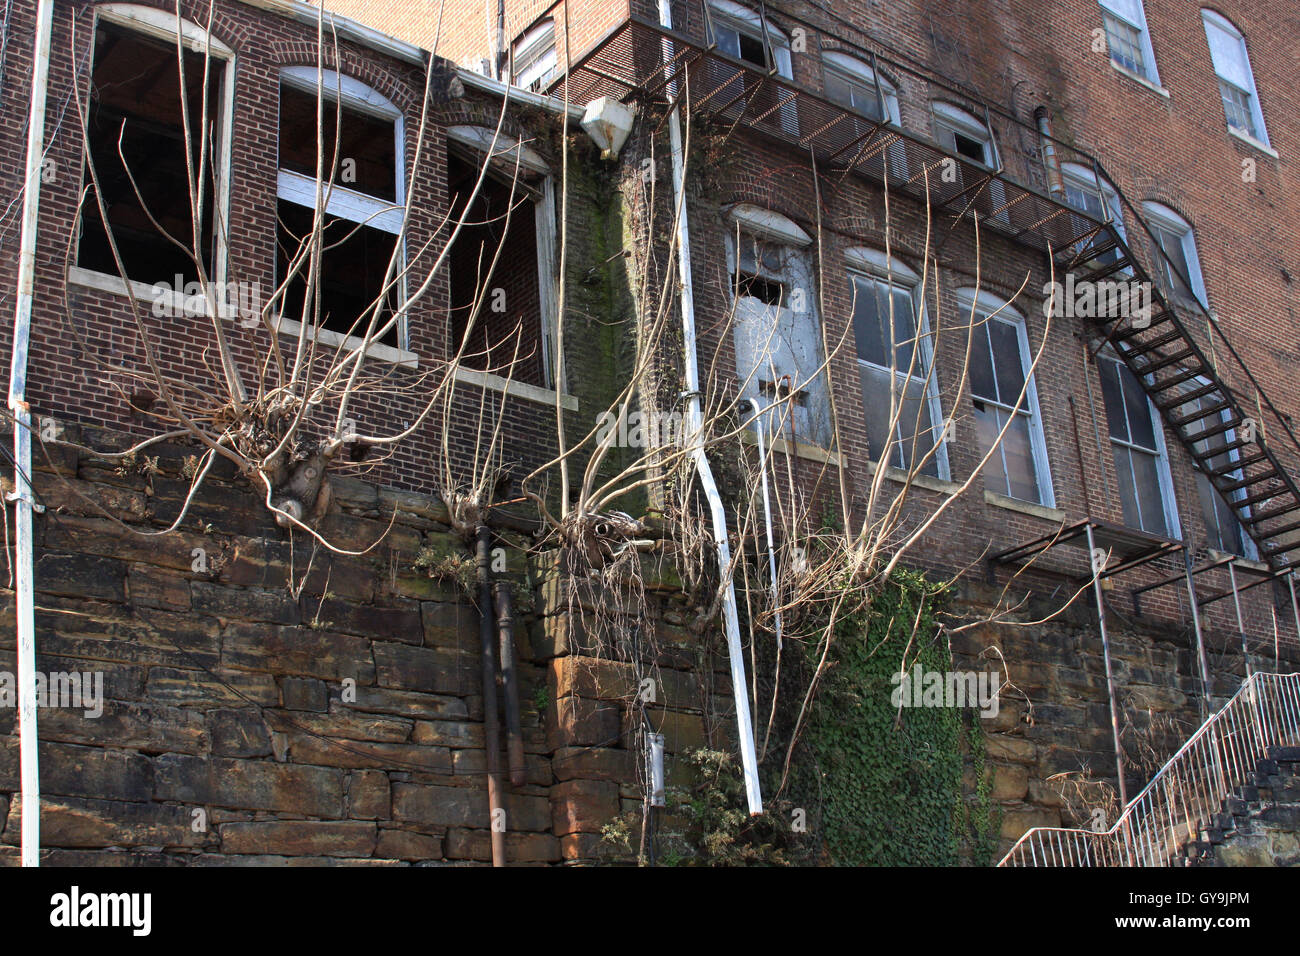 Stairs on old building on Commerce Street in Lynchburg, Virginia - Stock Image